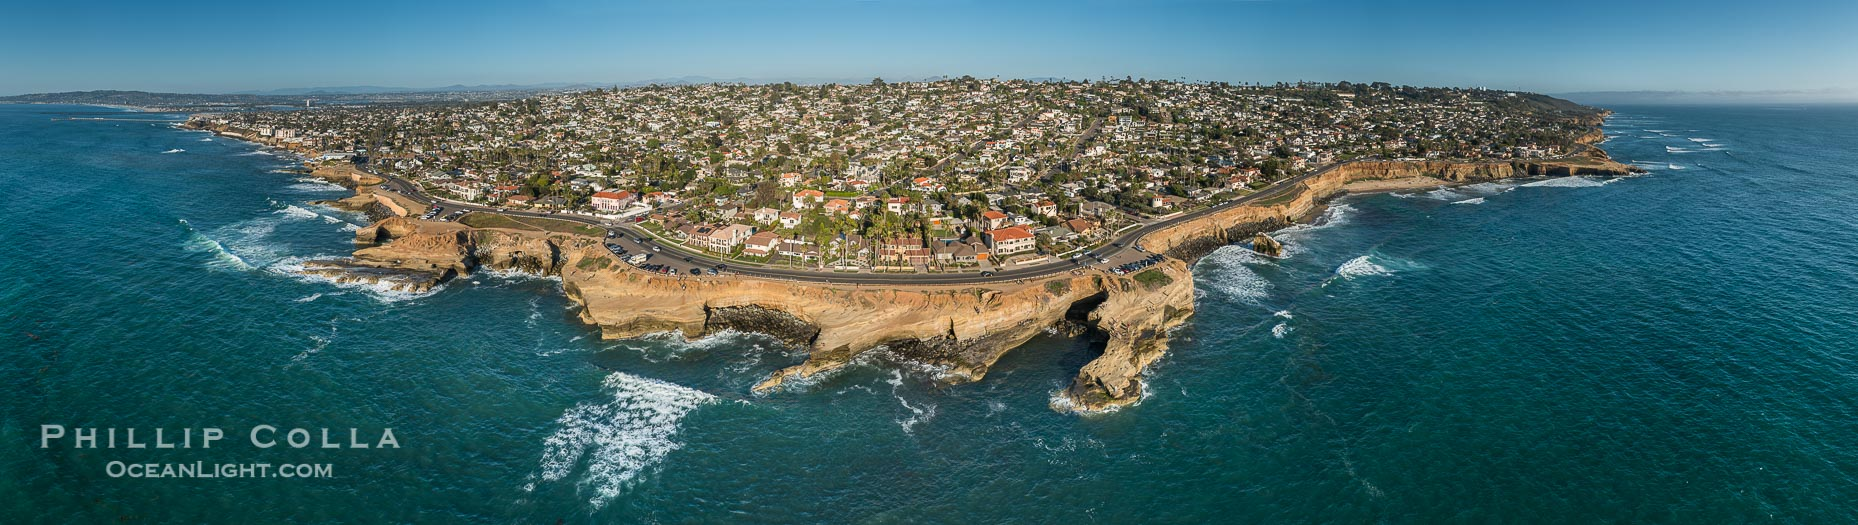 Aerial Panoramic Photo of Sunset Cliffs, San Diego, California